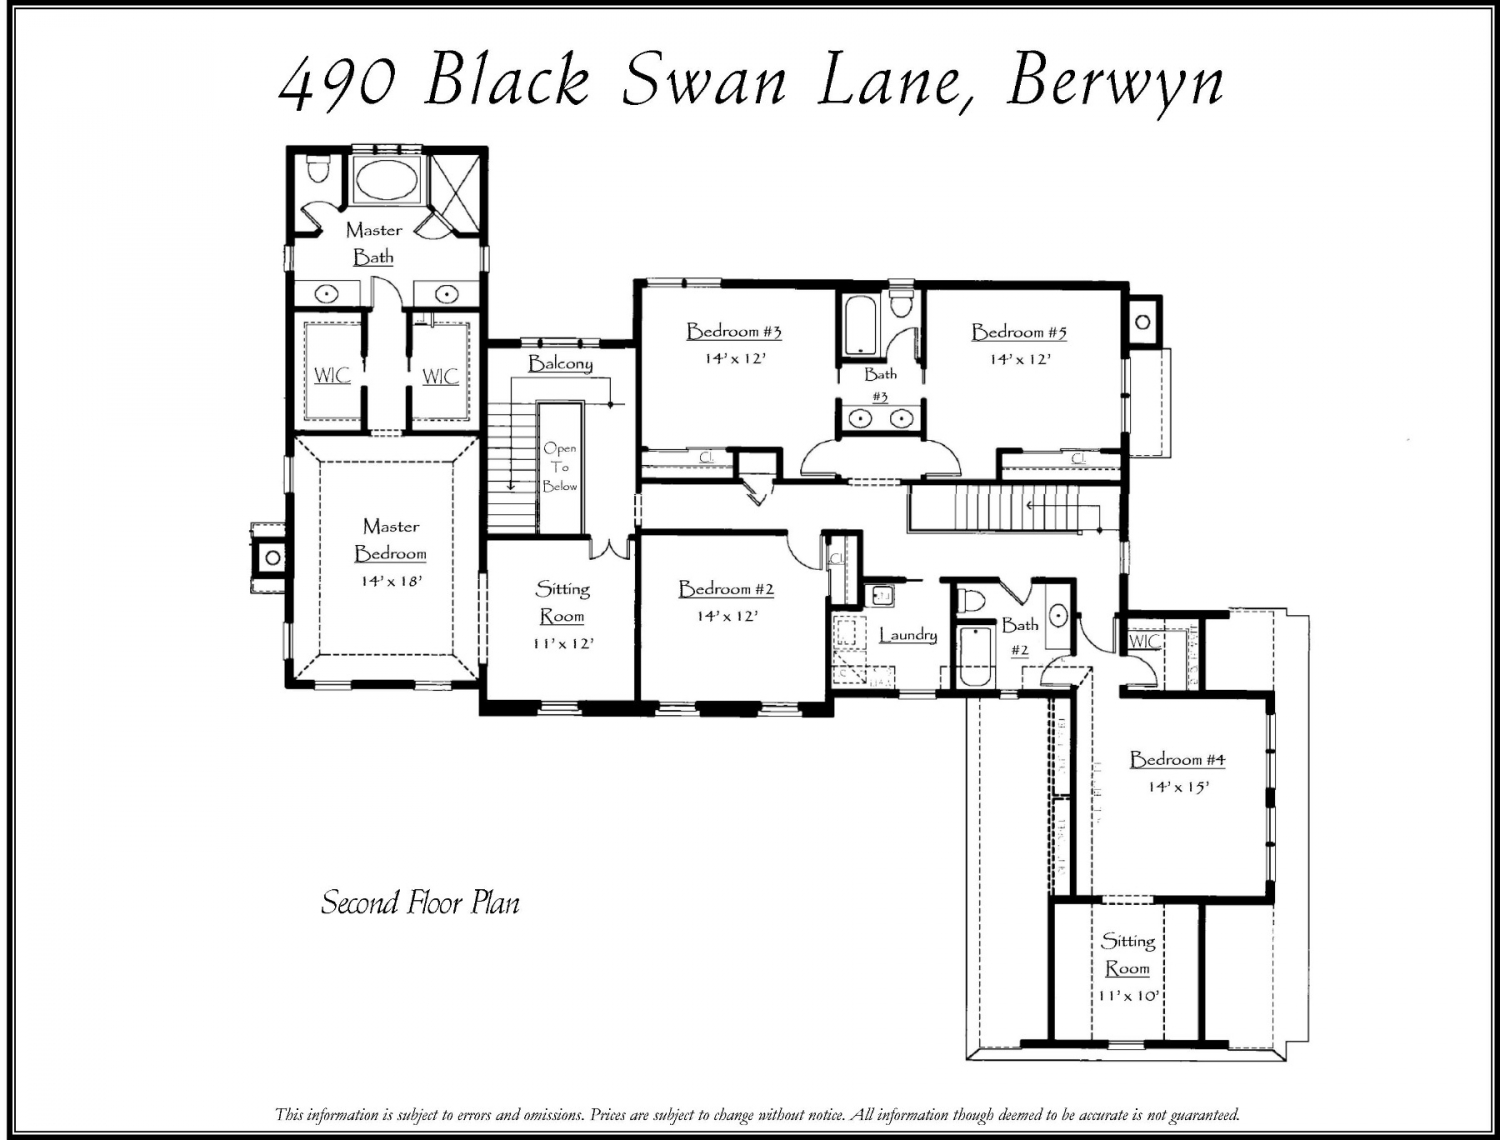 490 blsck swan second floor